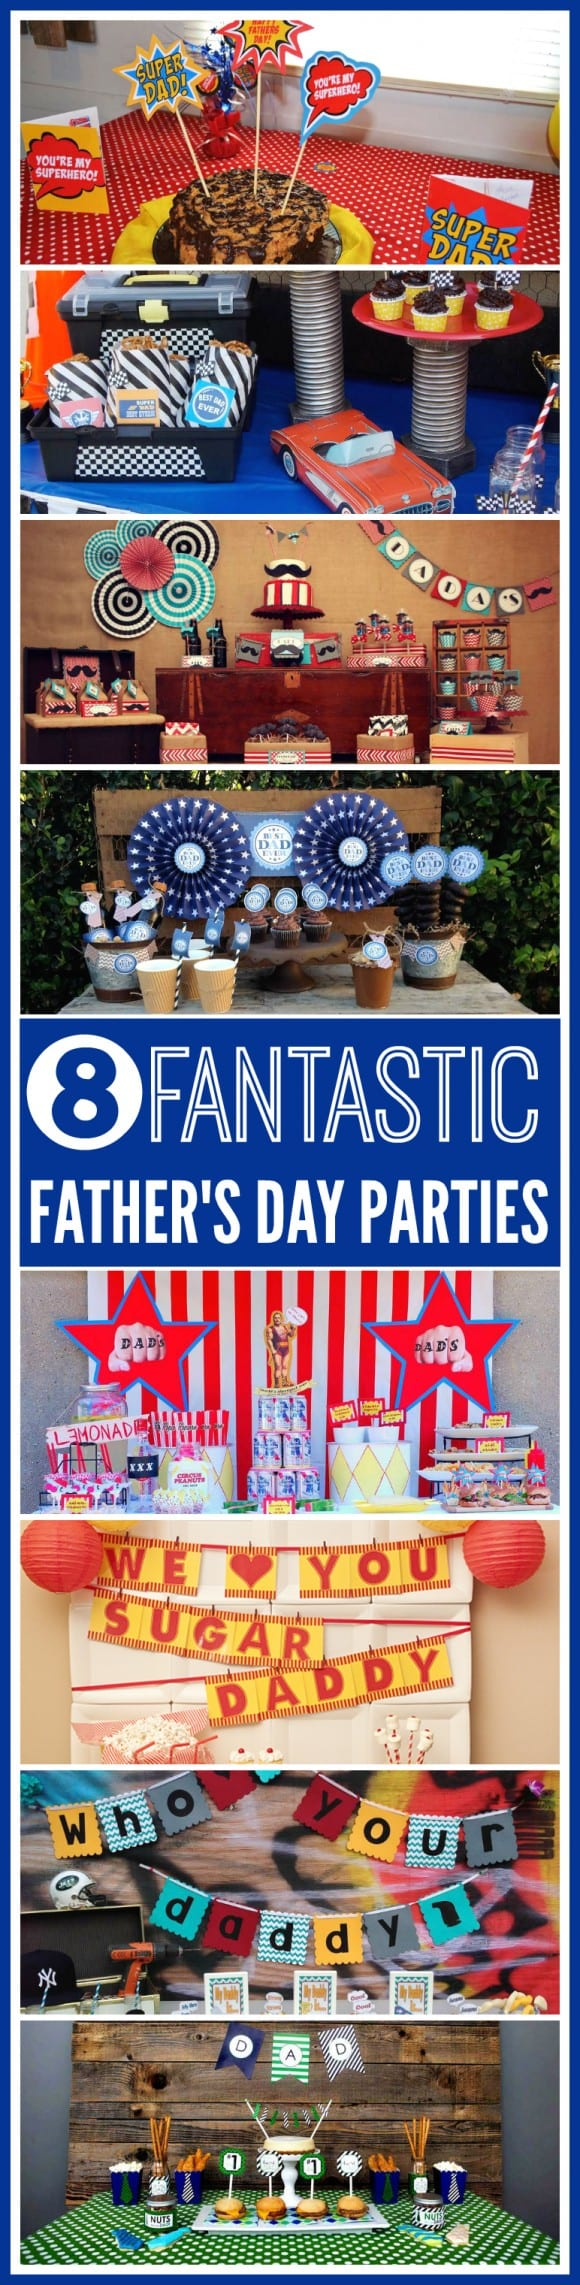 Fantastic Father's Day Parties | CatchMyParty.com